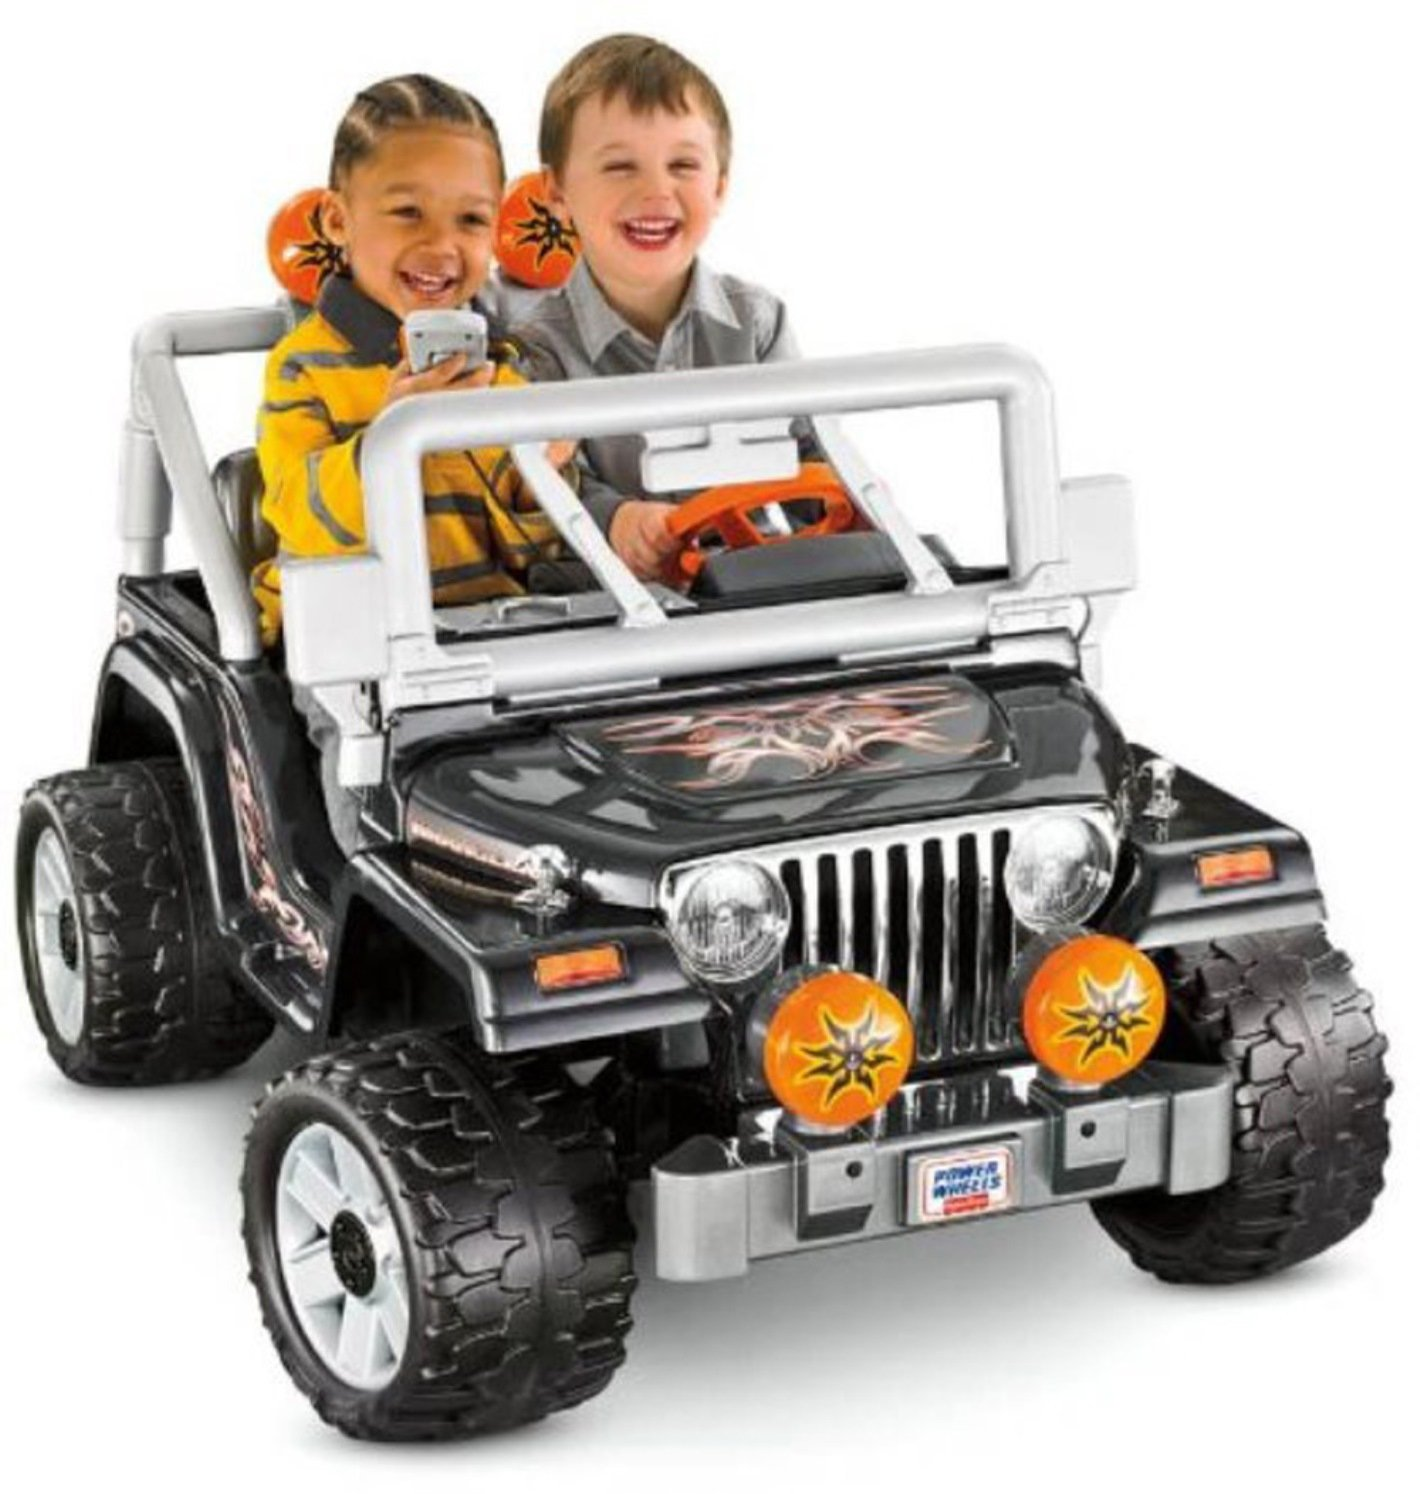 Fisher-Price Power Wheels Tough Talking Jeep Wrangler by Power Wheels